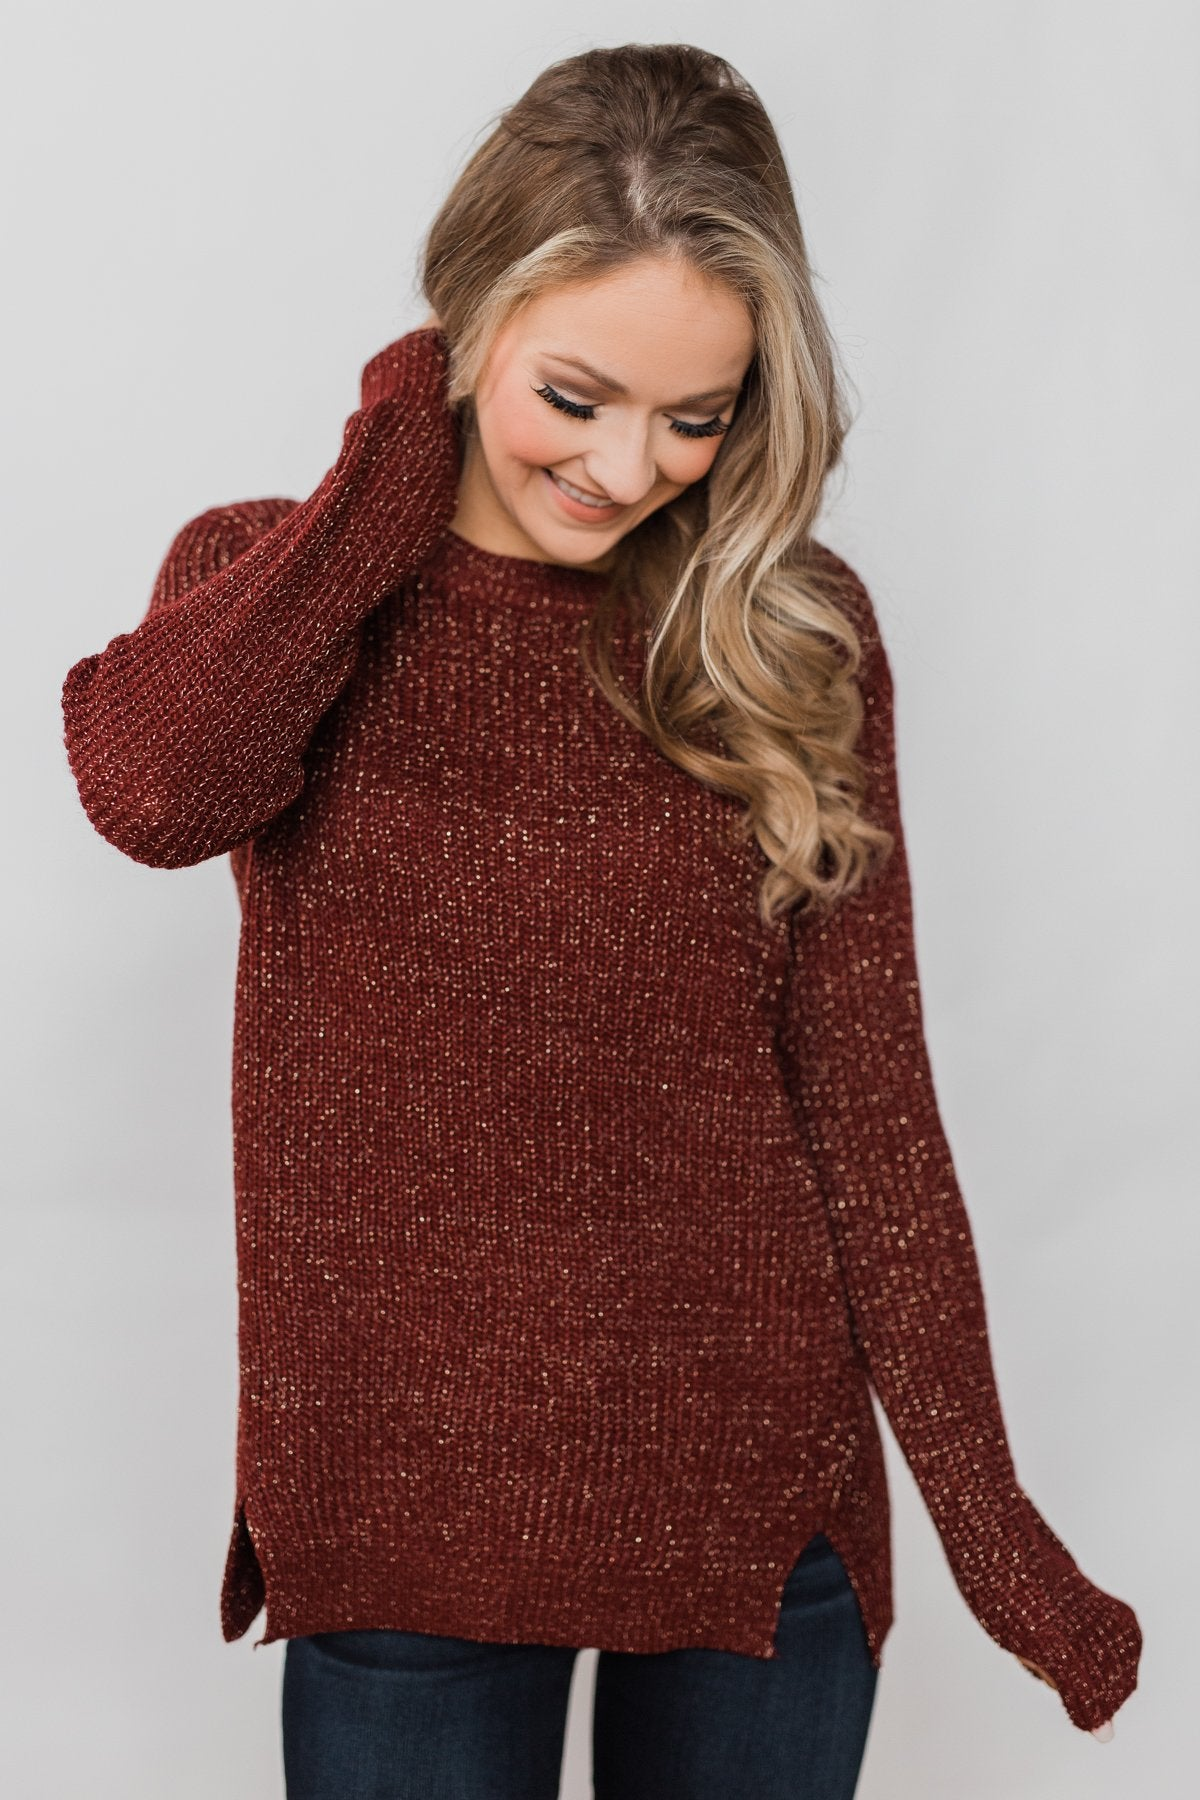 Shimmer All Night Long Knitted Sweater- Burgundy